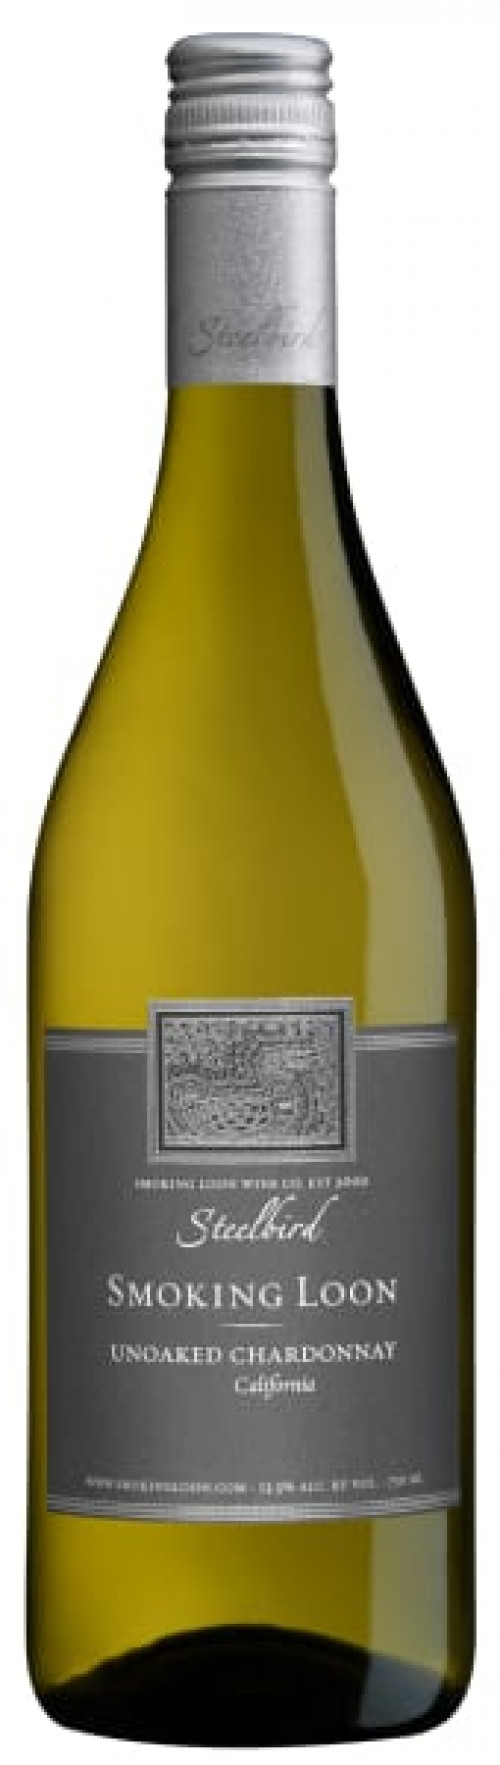 2018 Smoking Loon Steelbird Chardonnay 750Ml